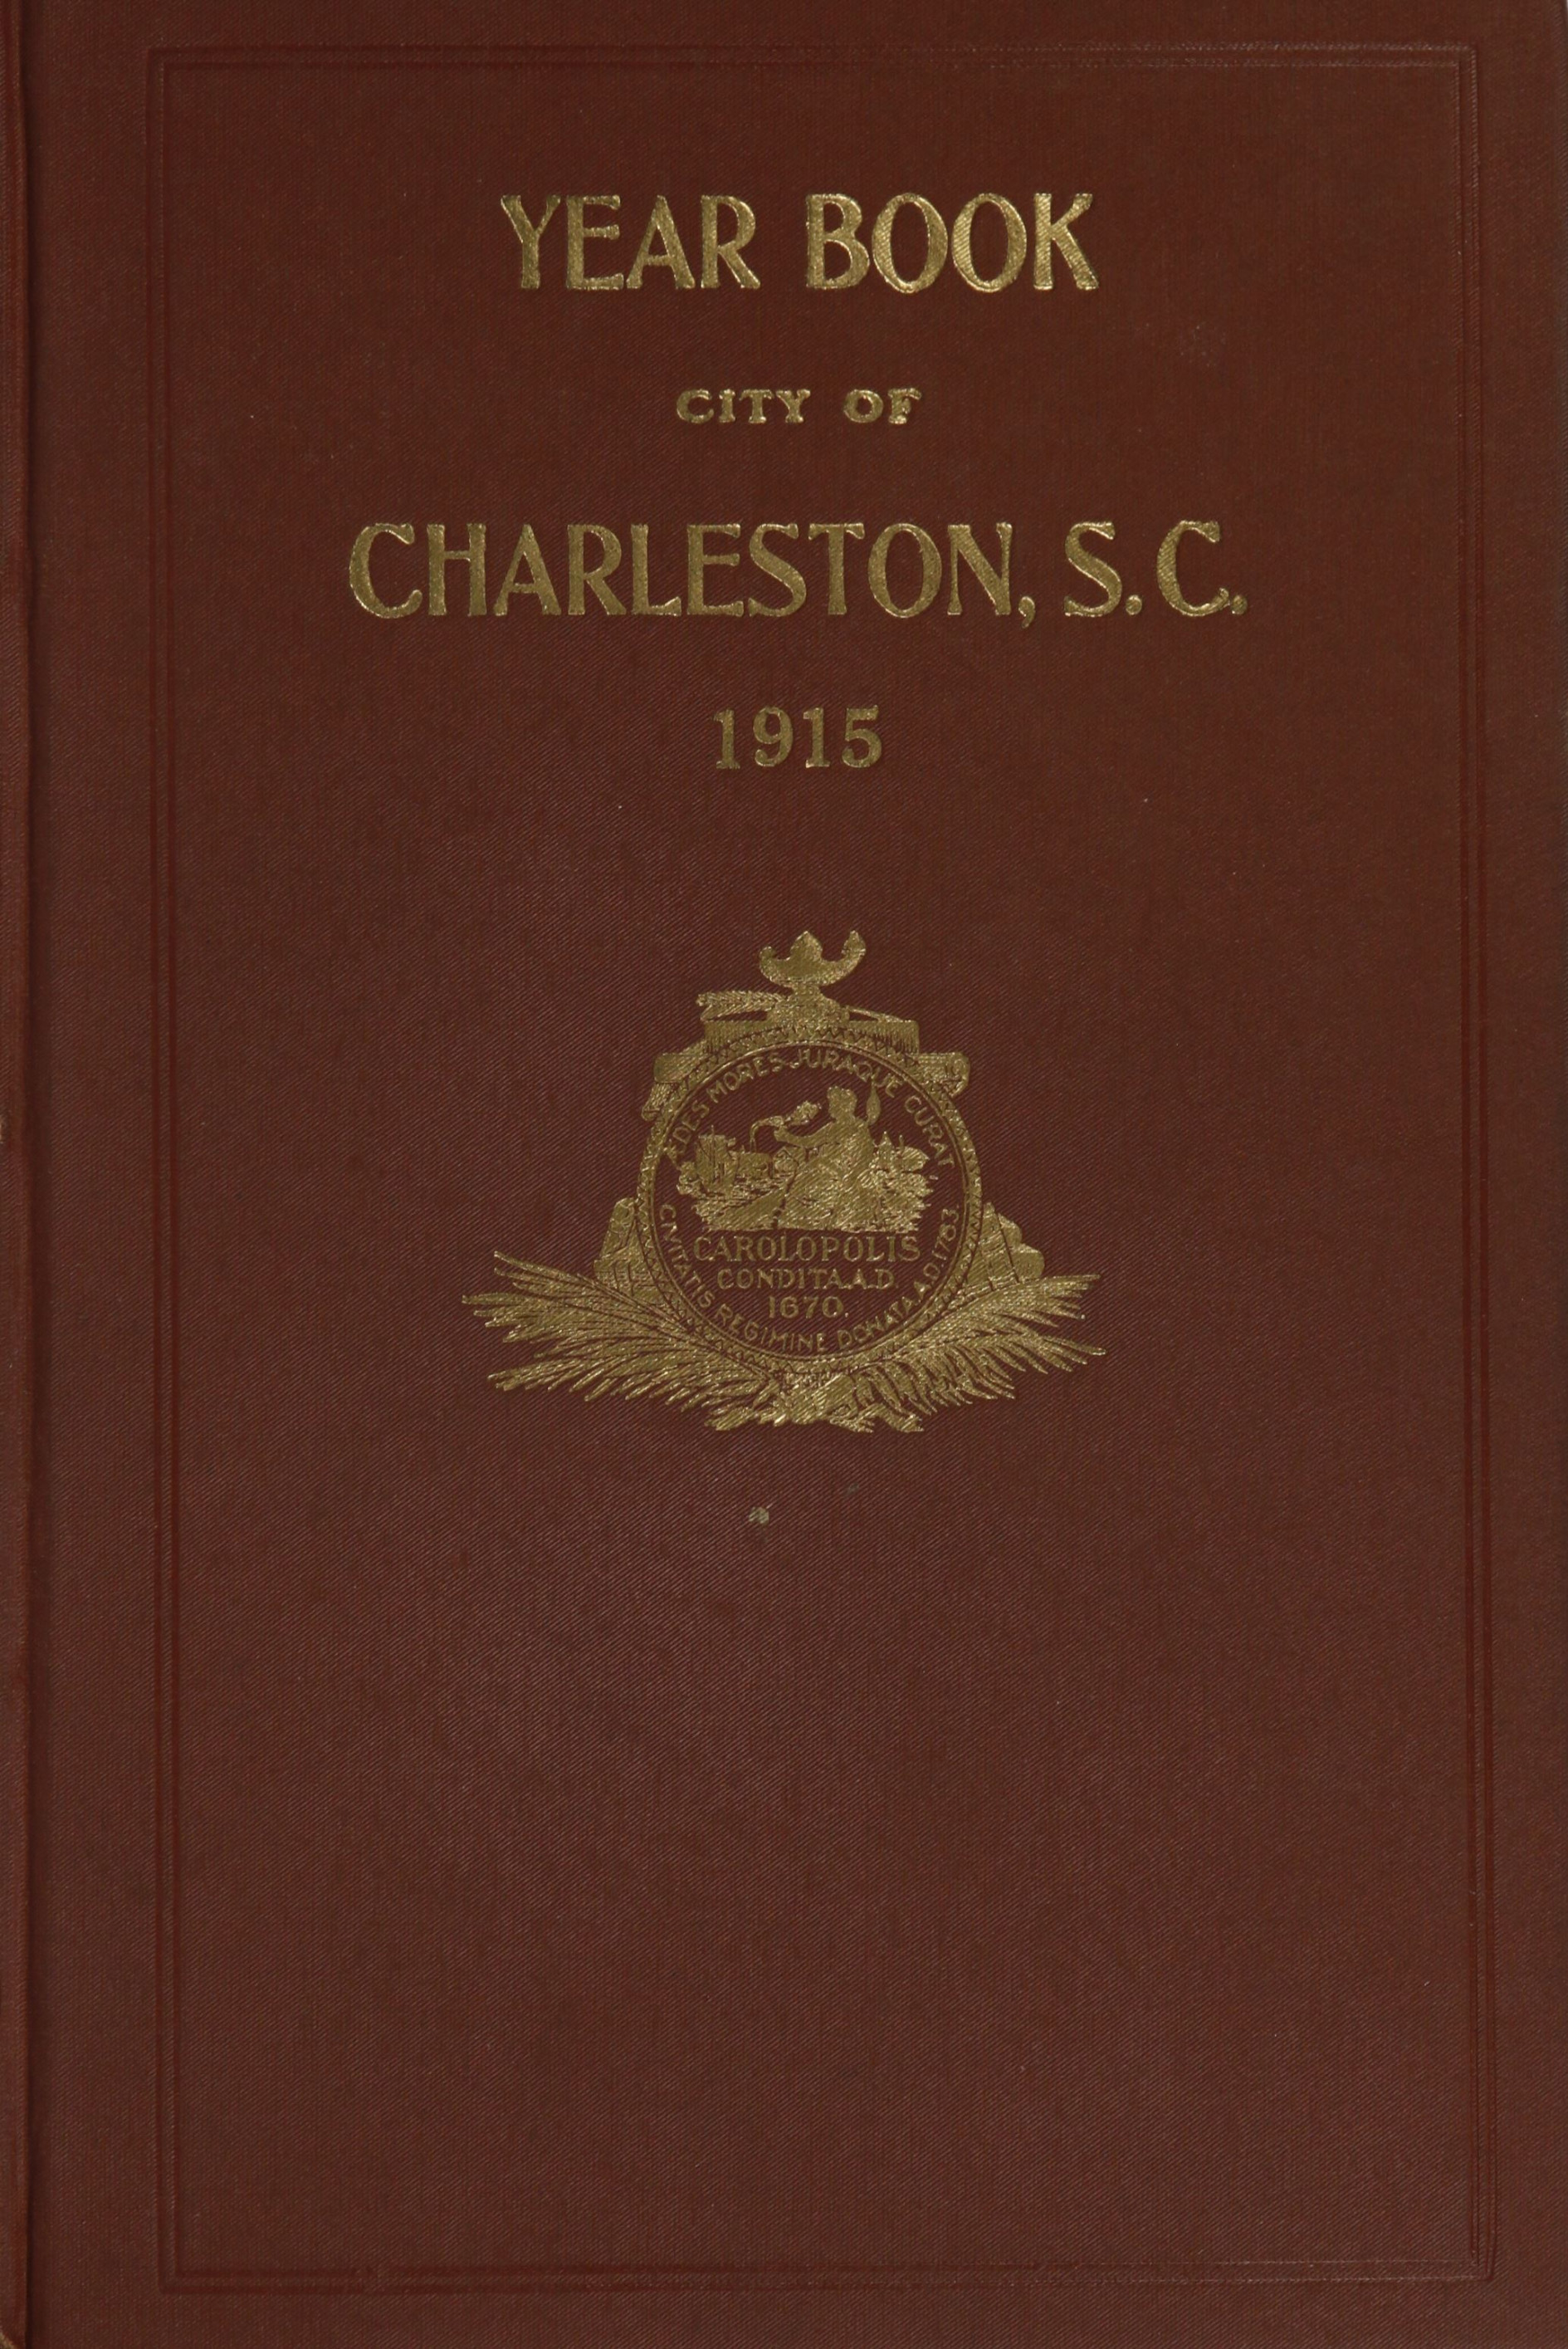 Charleston Yearbook, 1915, cover